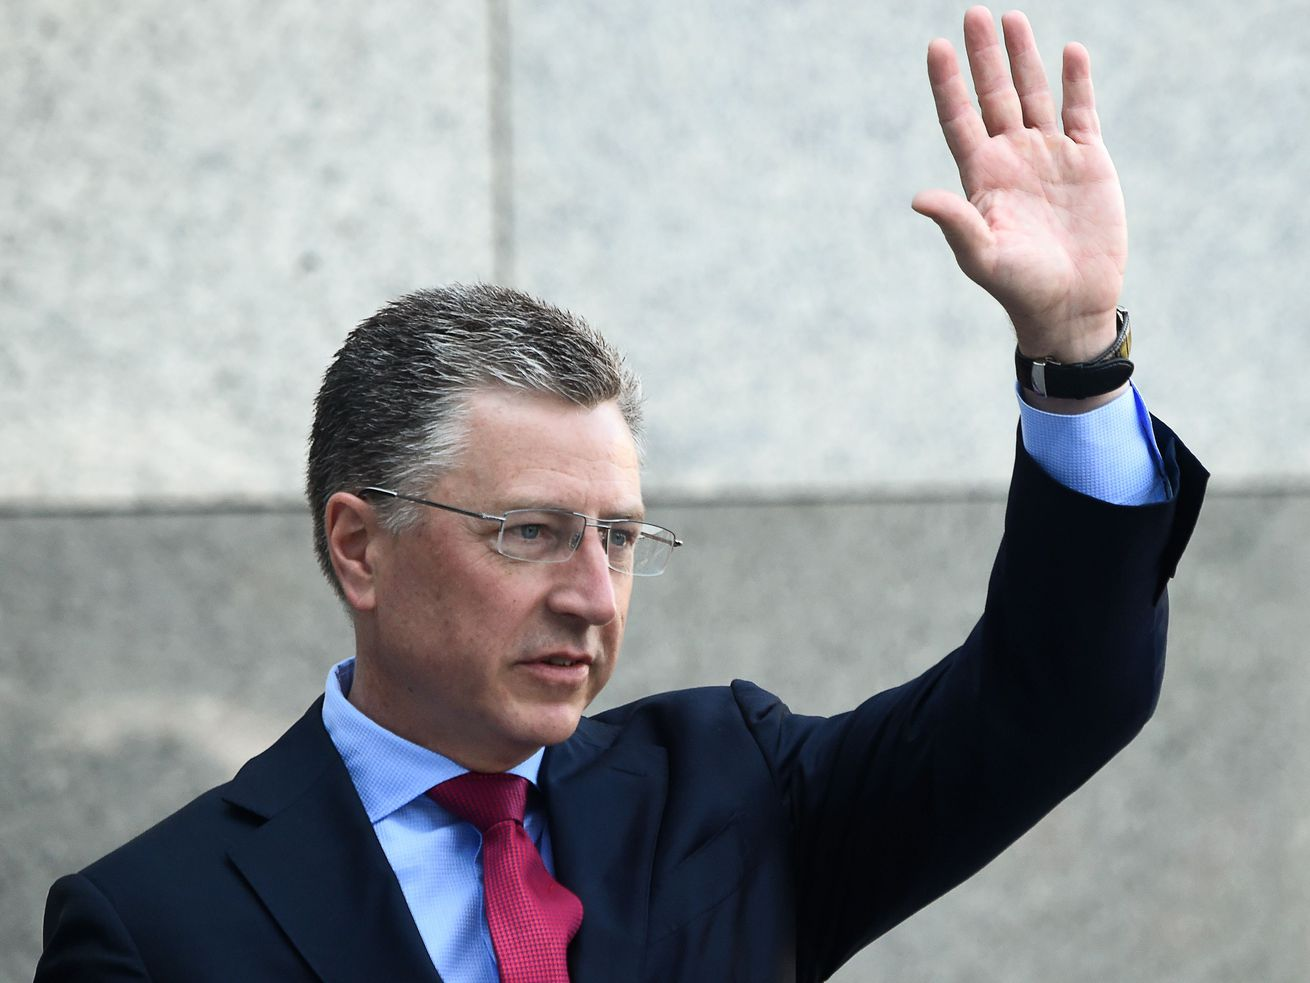 US special envoy for Ukraine Kurt Volker waves as he arrives prior to a press-conference in Kiev on July 27, 2019 following his visit in Ukraine